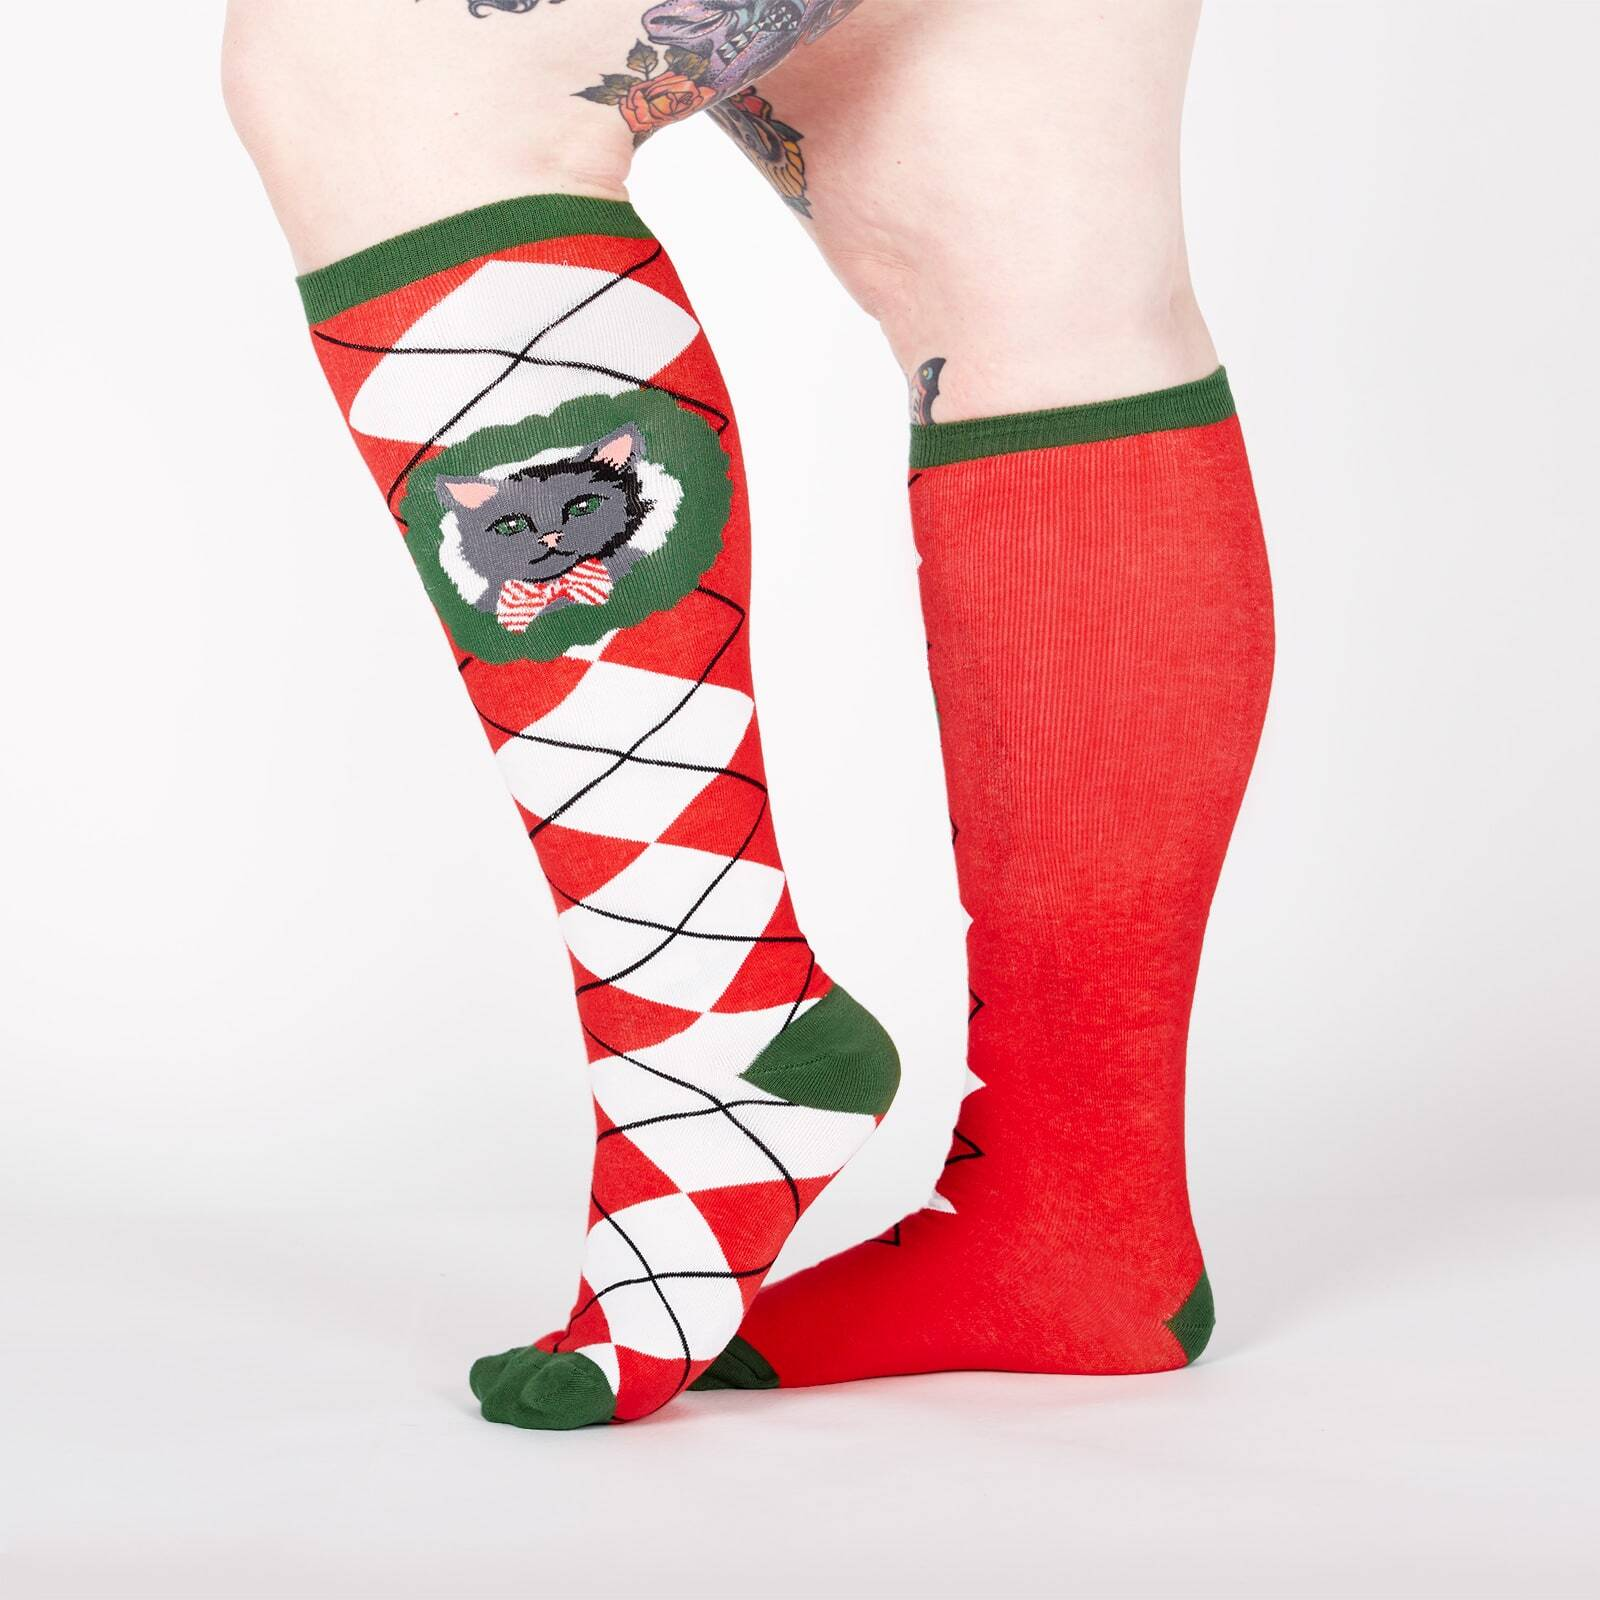 model wearing STRETCH-IT Deck the Paws - Wide Calf - Dog and Cat Holiday Argyle Christmas Knee High Socks Red - Unisex